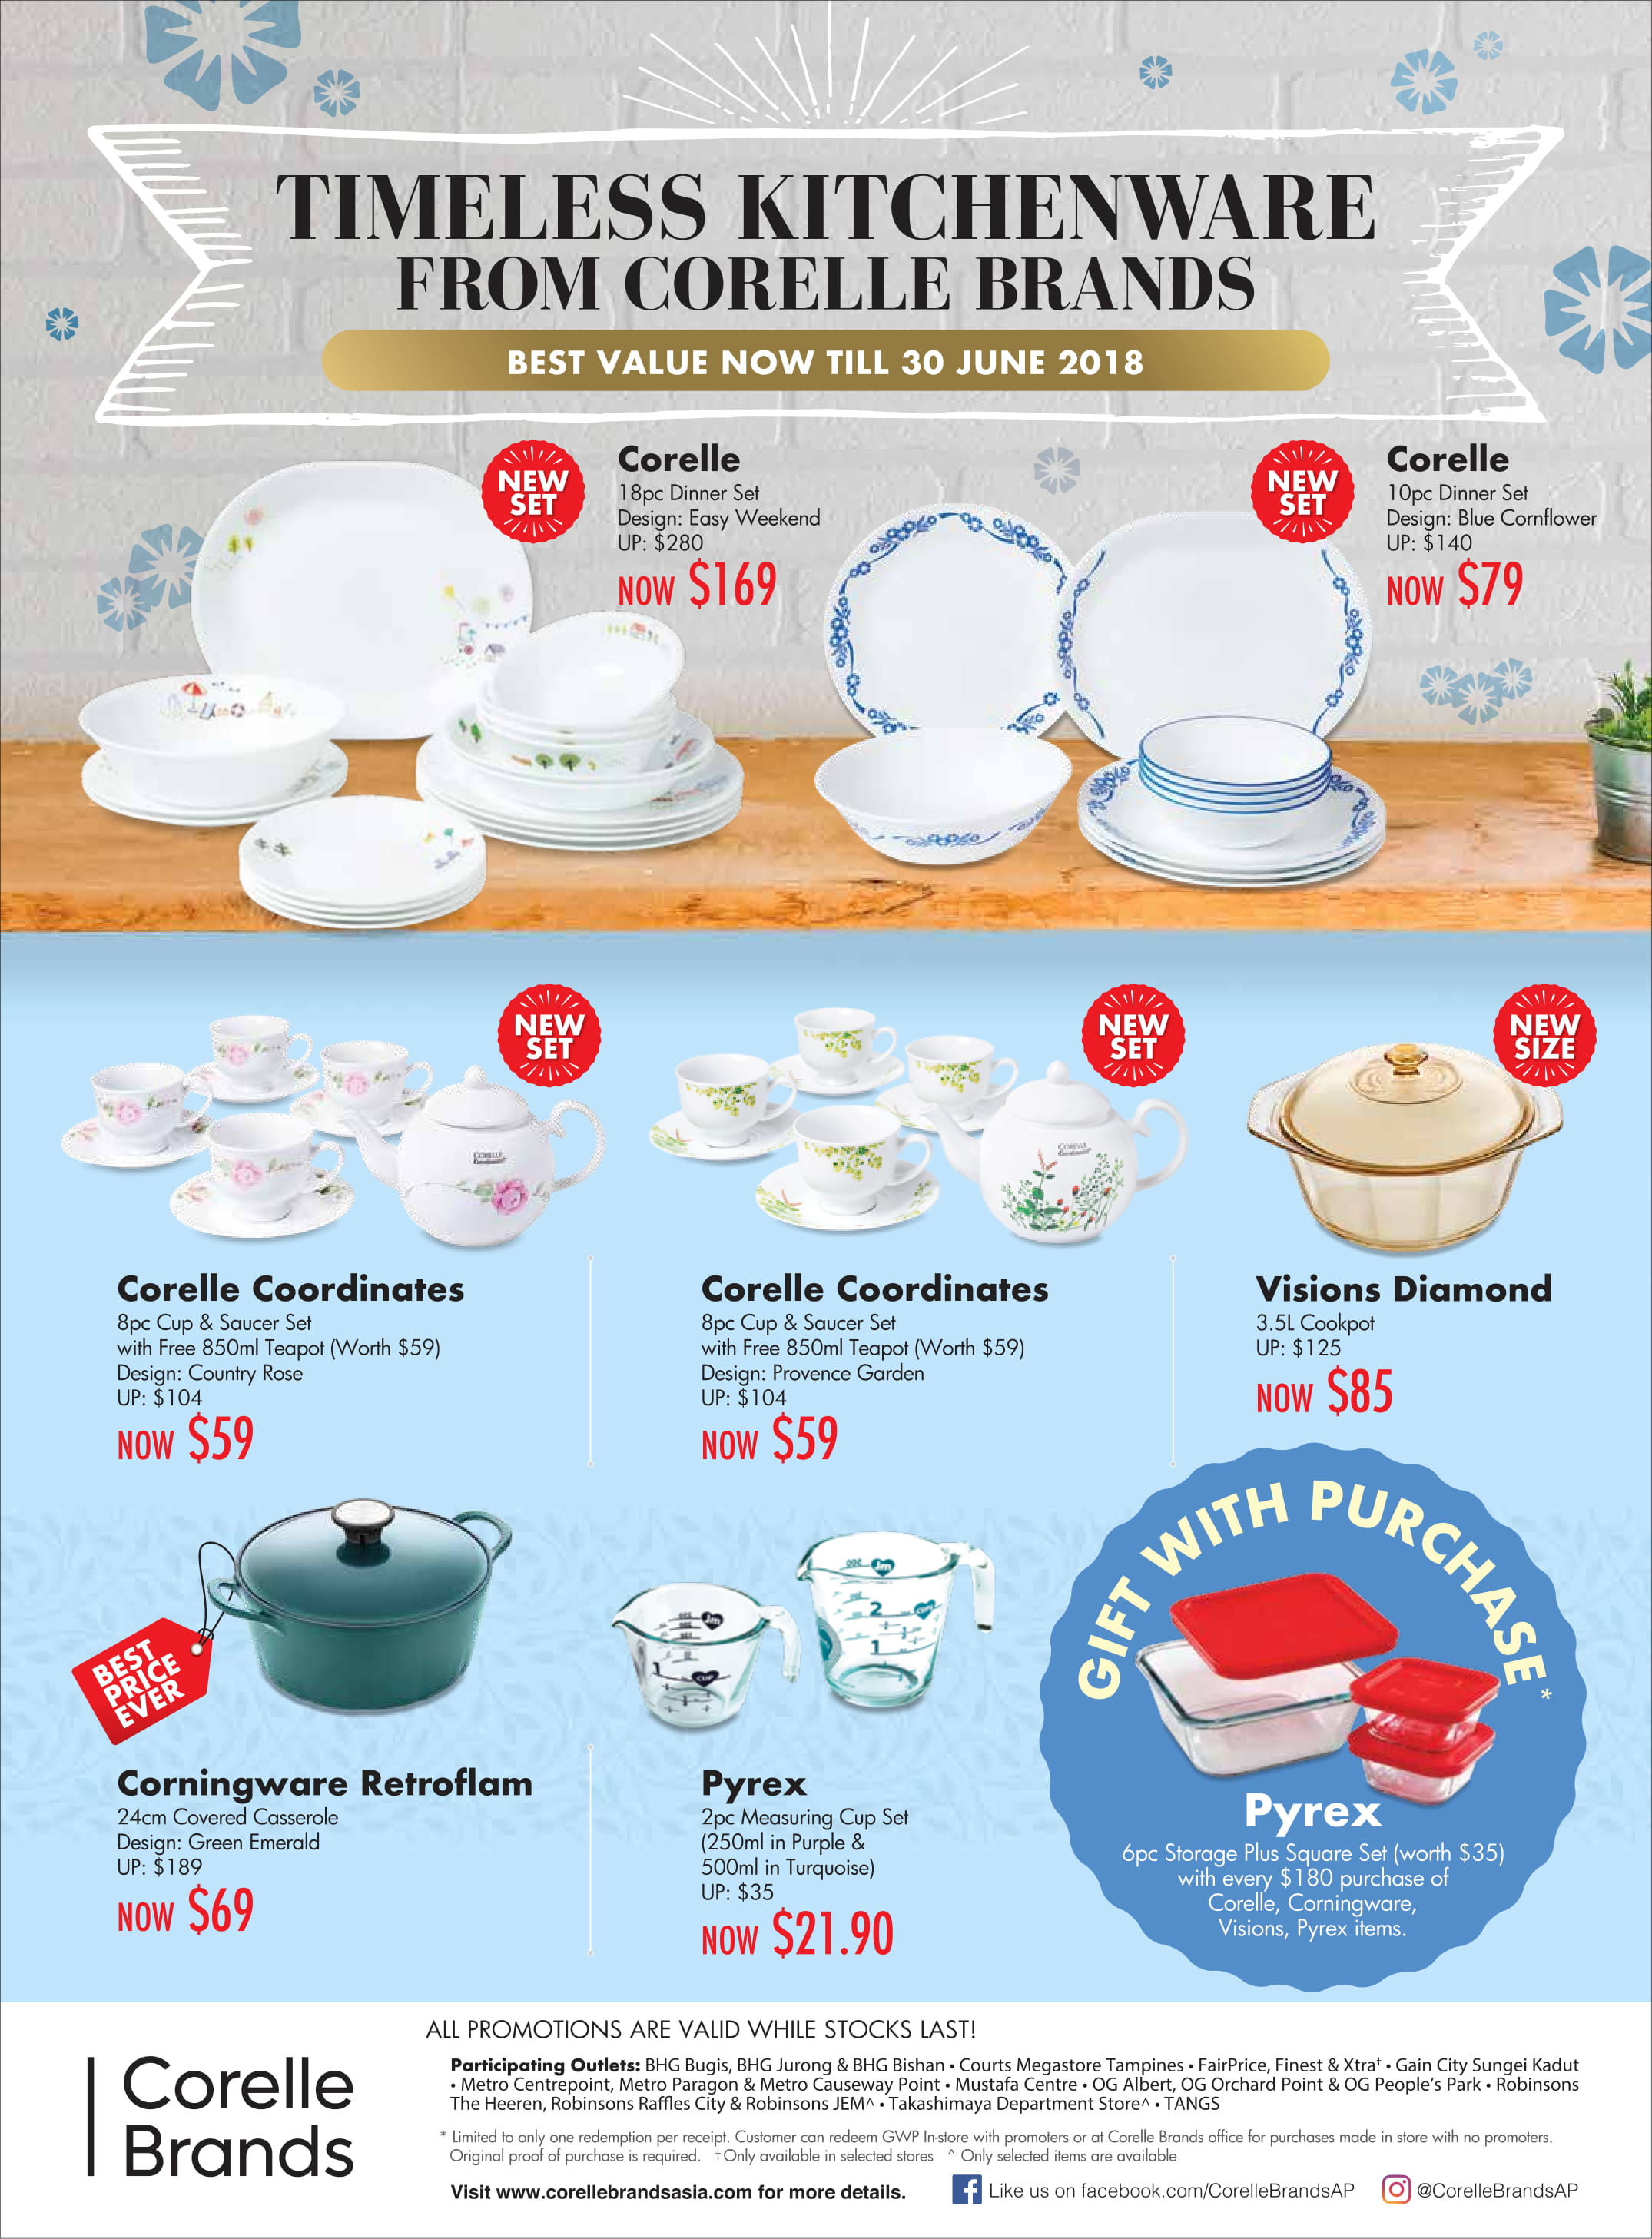 Love Pyrex & Corelle Brands - Promotion till 30 June 2018